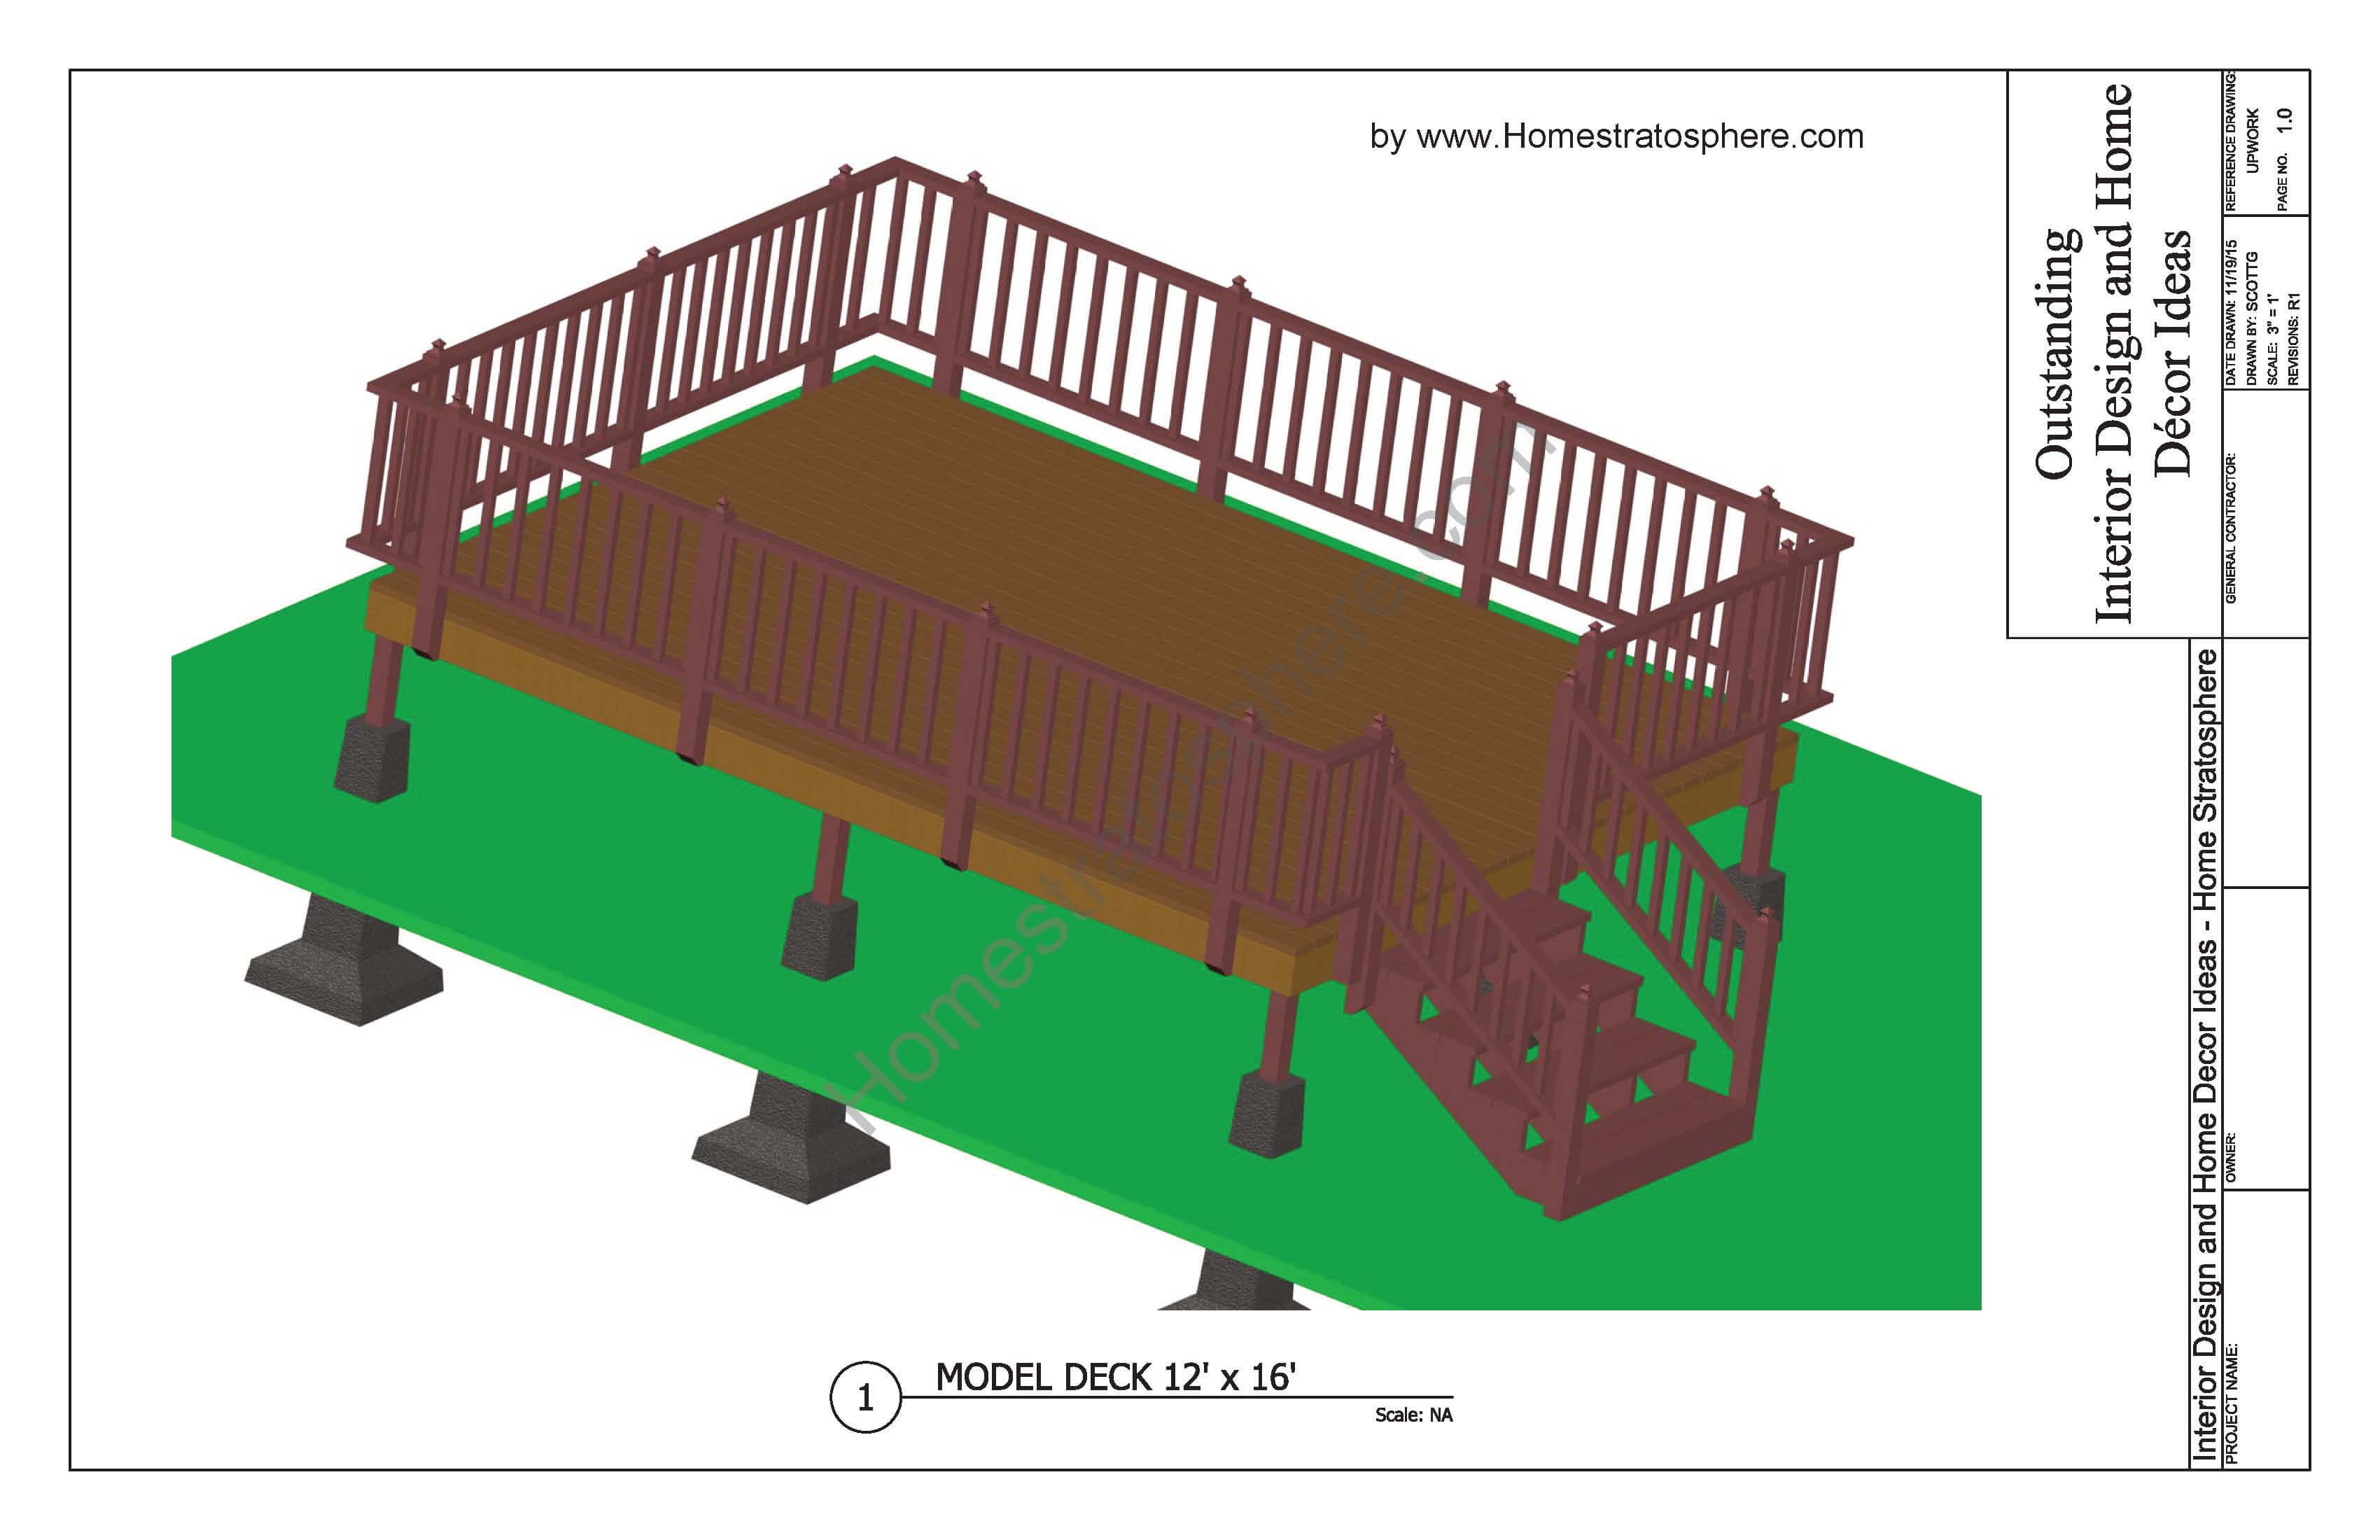 Free 12'x16' Deck Plan Download